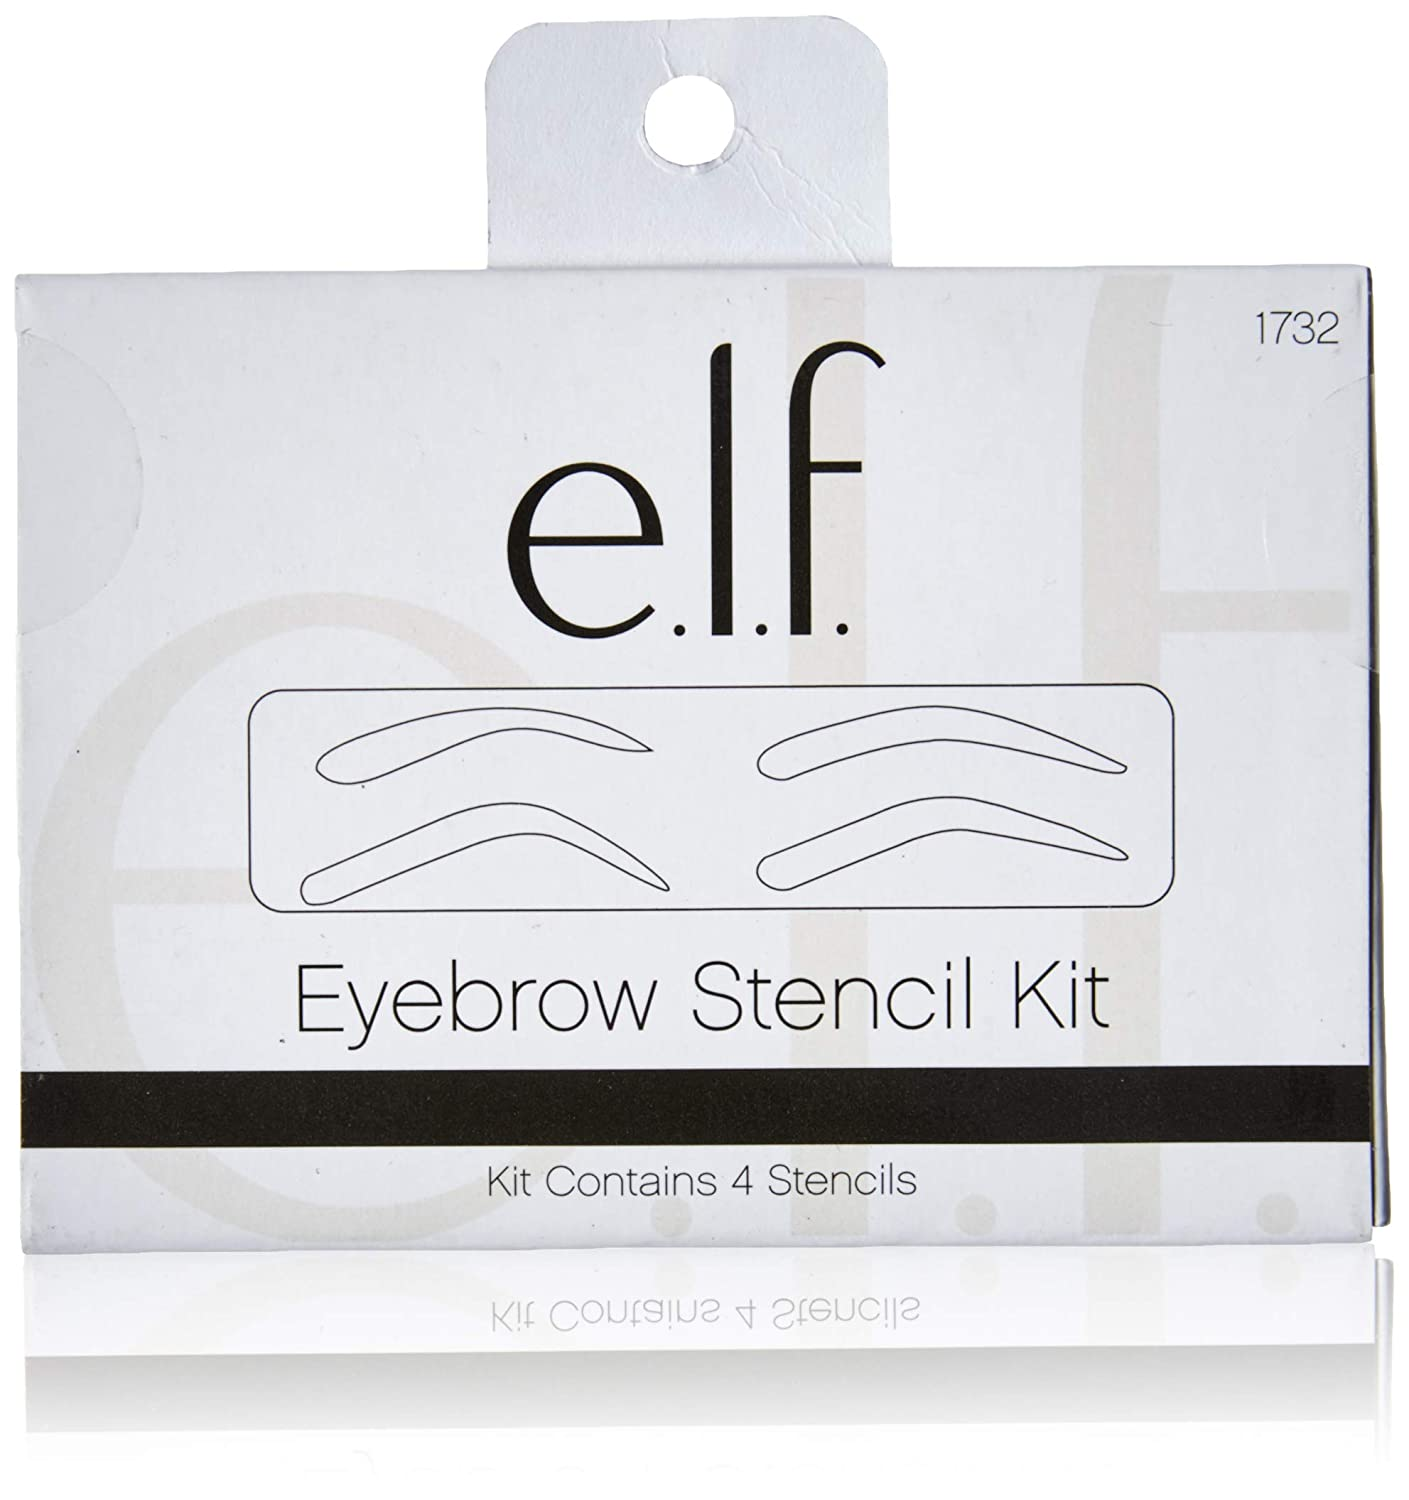 picture relating to Eyebrow Shapes Stencils Printable named elf Cosmetics Eyebrow Stencil Package for Effectively Fashioned Brows, Incorporates 4 Reusable Stencils